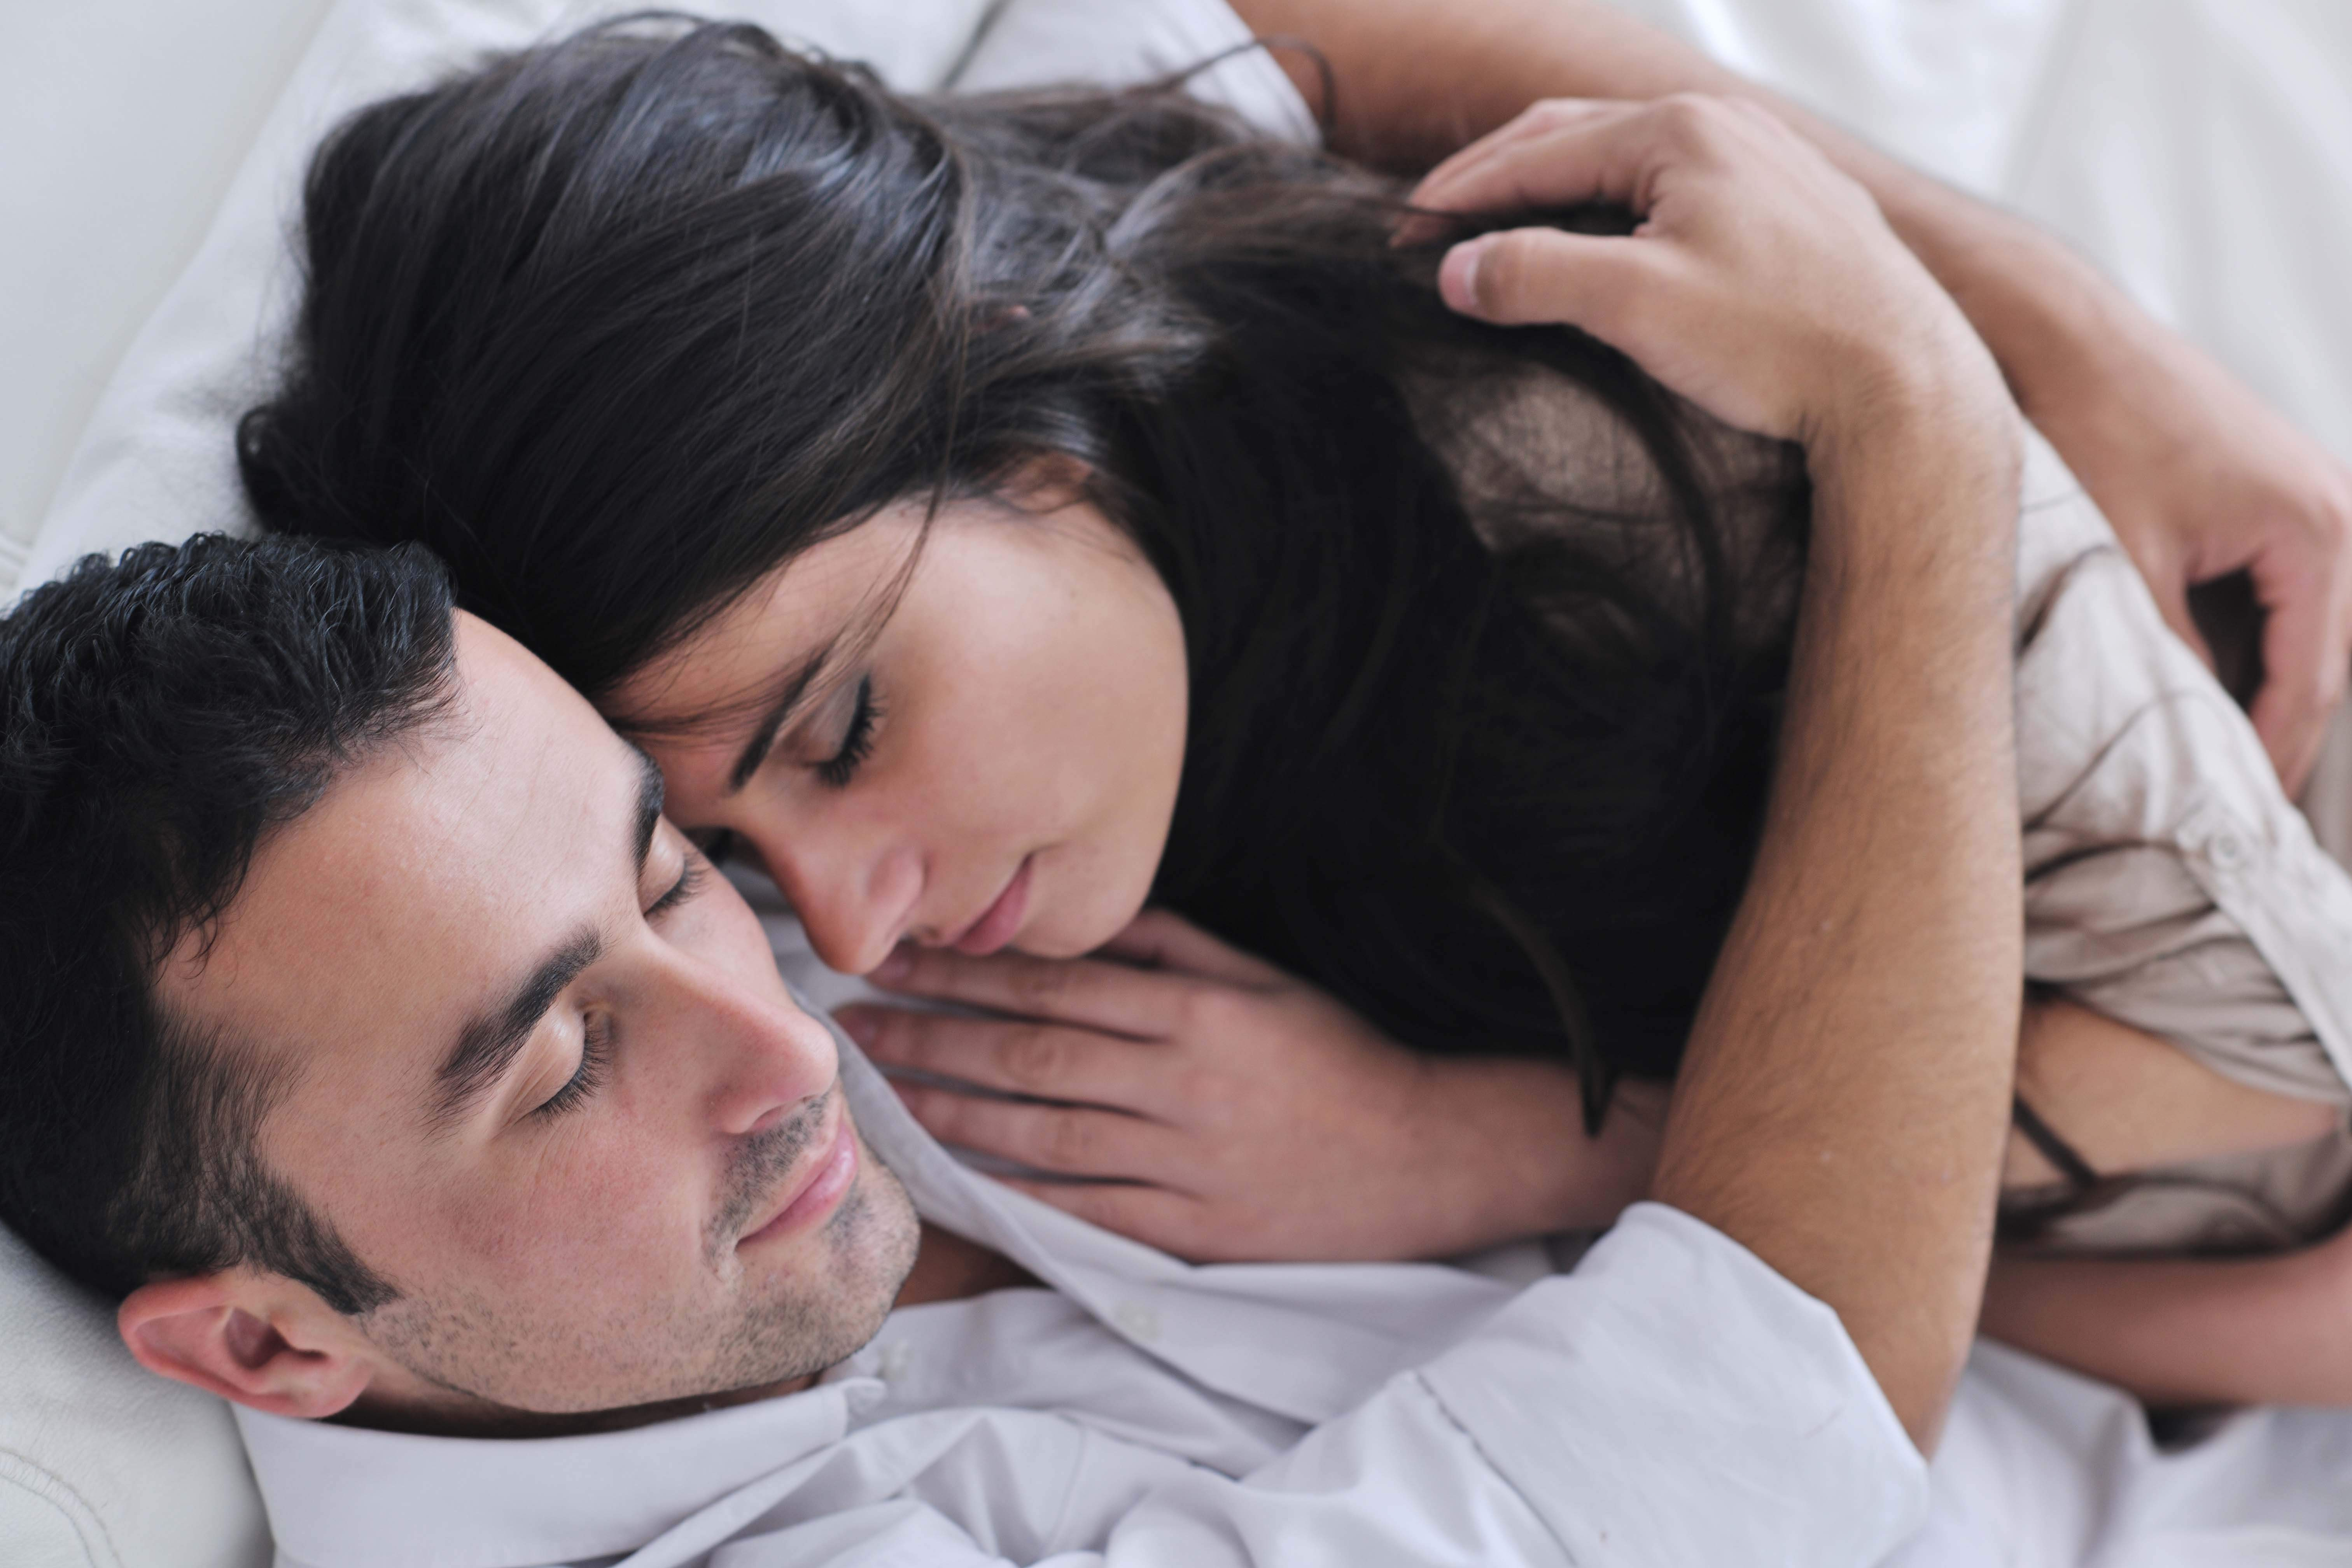 The hardest part about intimacy that no one ever talks about at all.